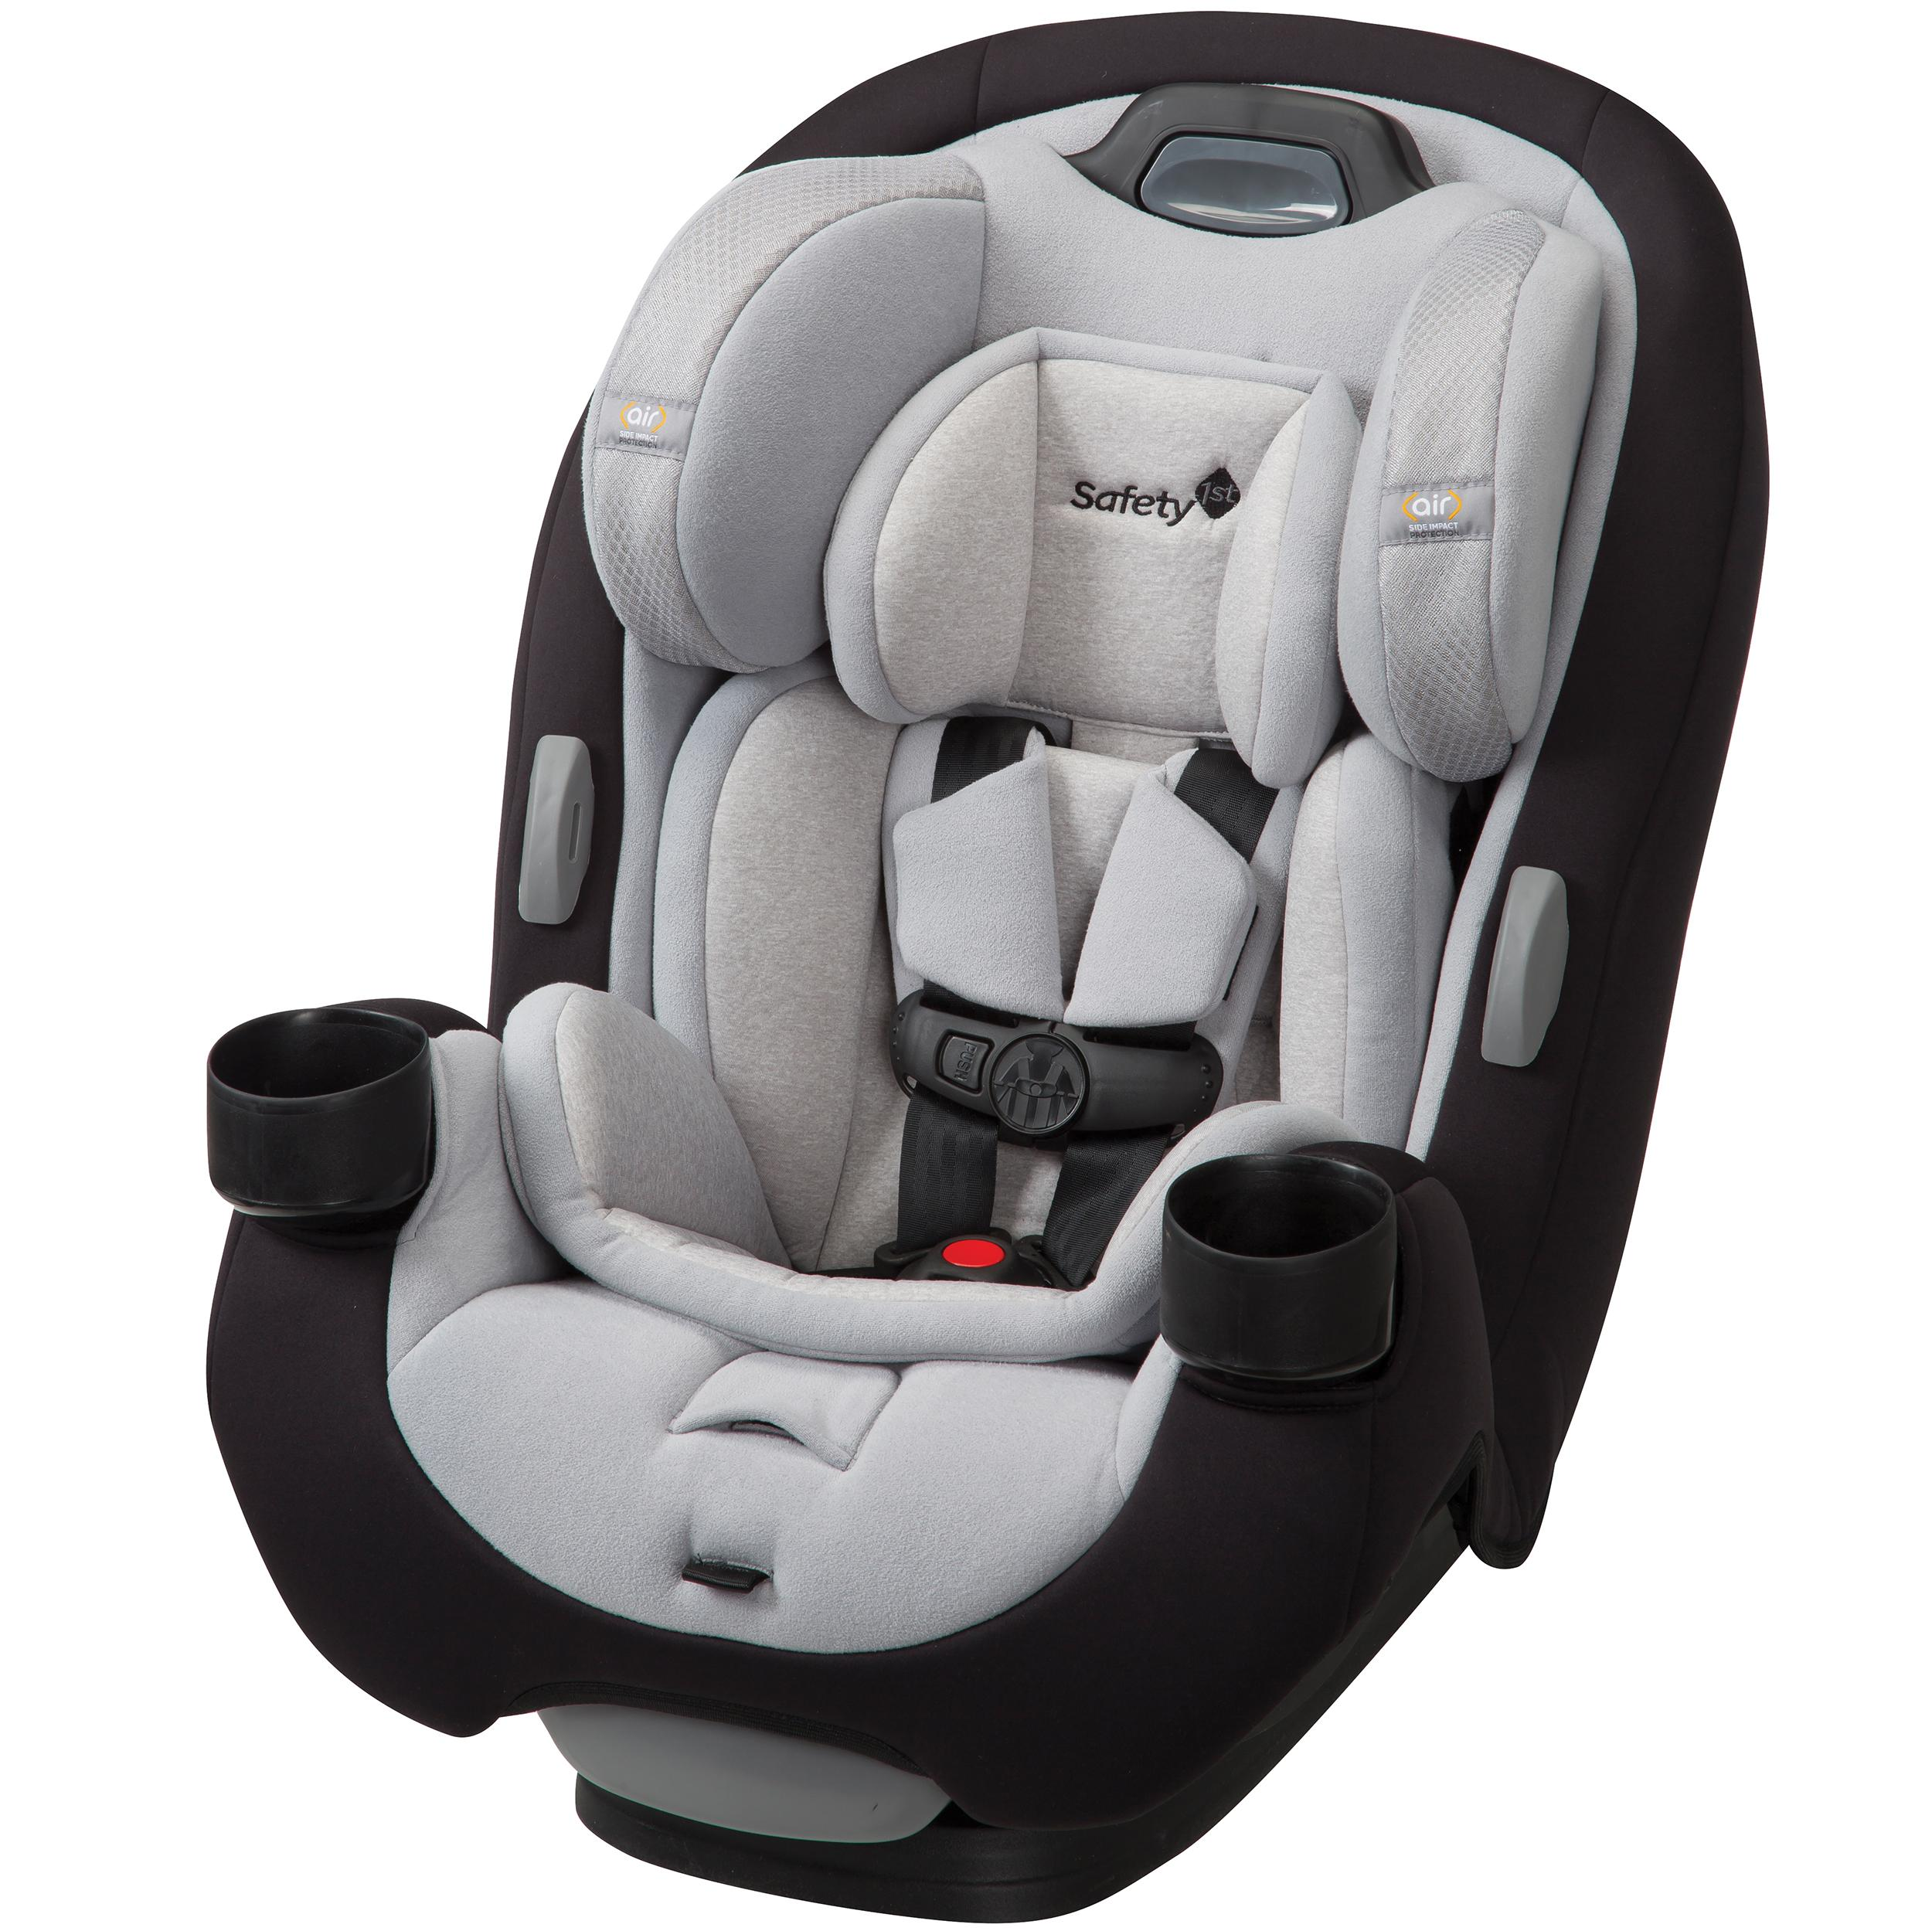 safety 1st grow n go ex air 3 in 1 convertible car seat lithograph baby. Black Bedroom Furniture Sets. Home Design Ideas